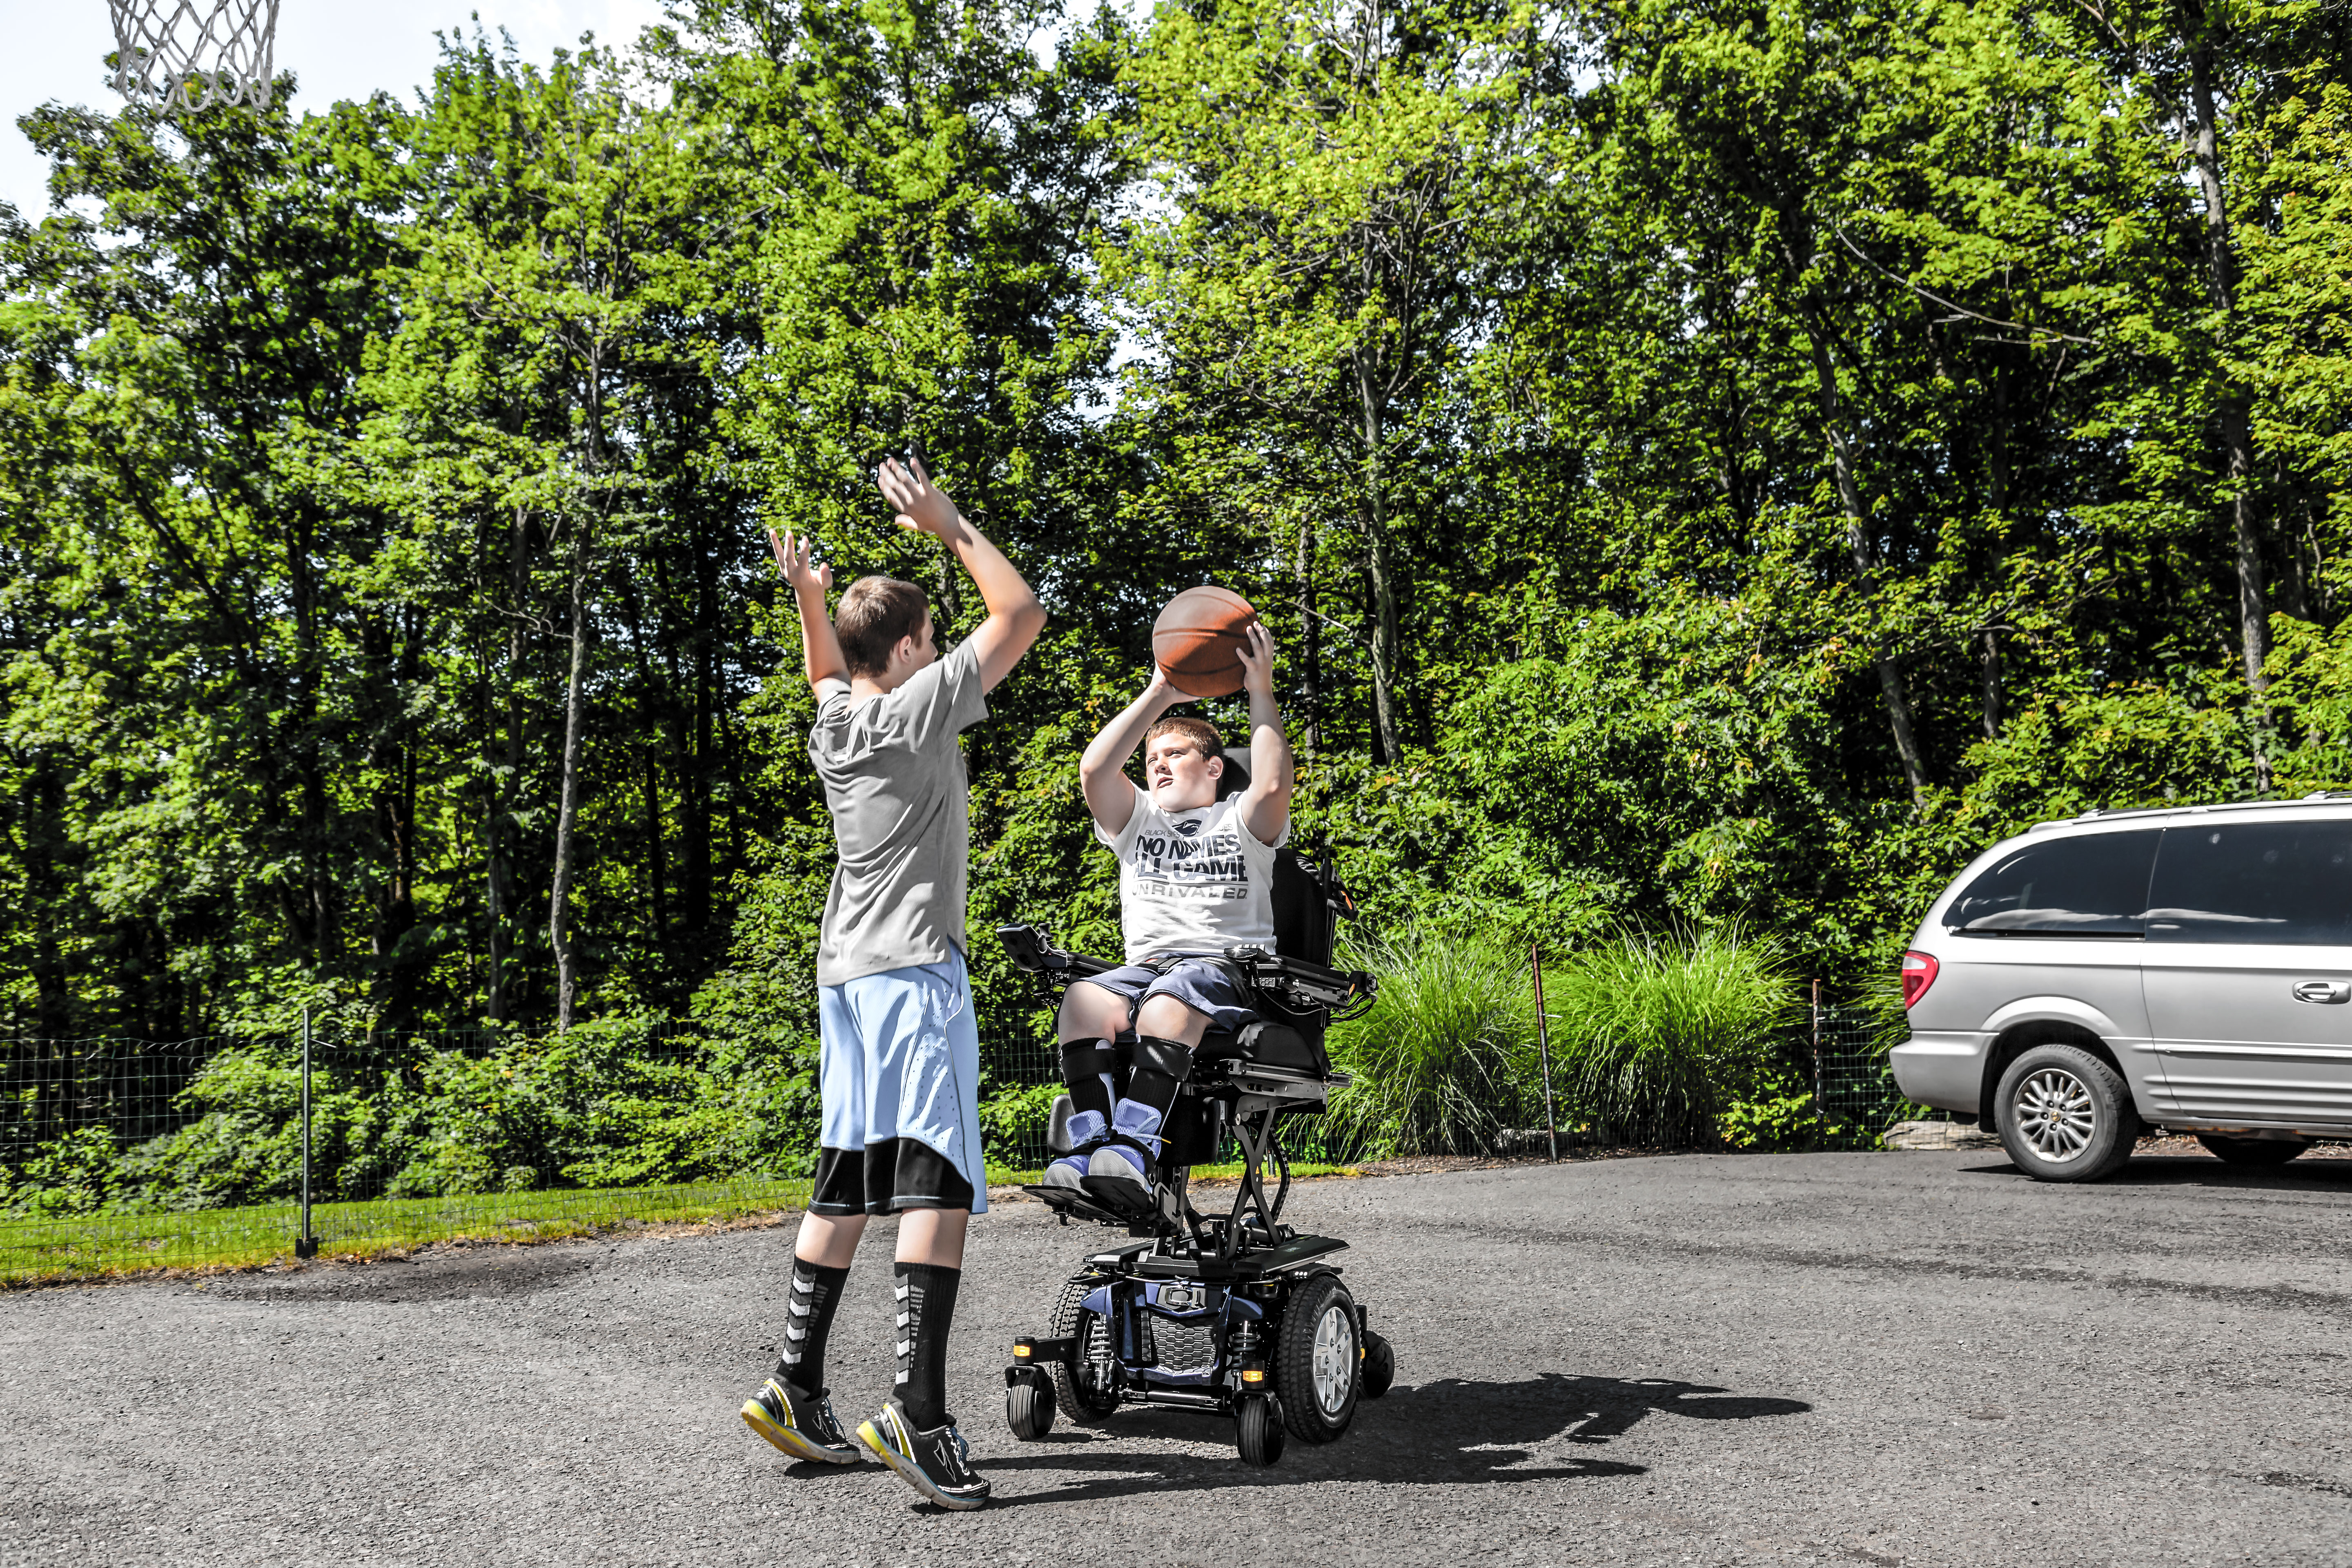 Youth Playing Basketball in Power Wheelchair